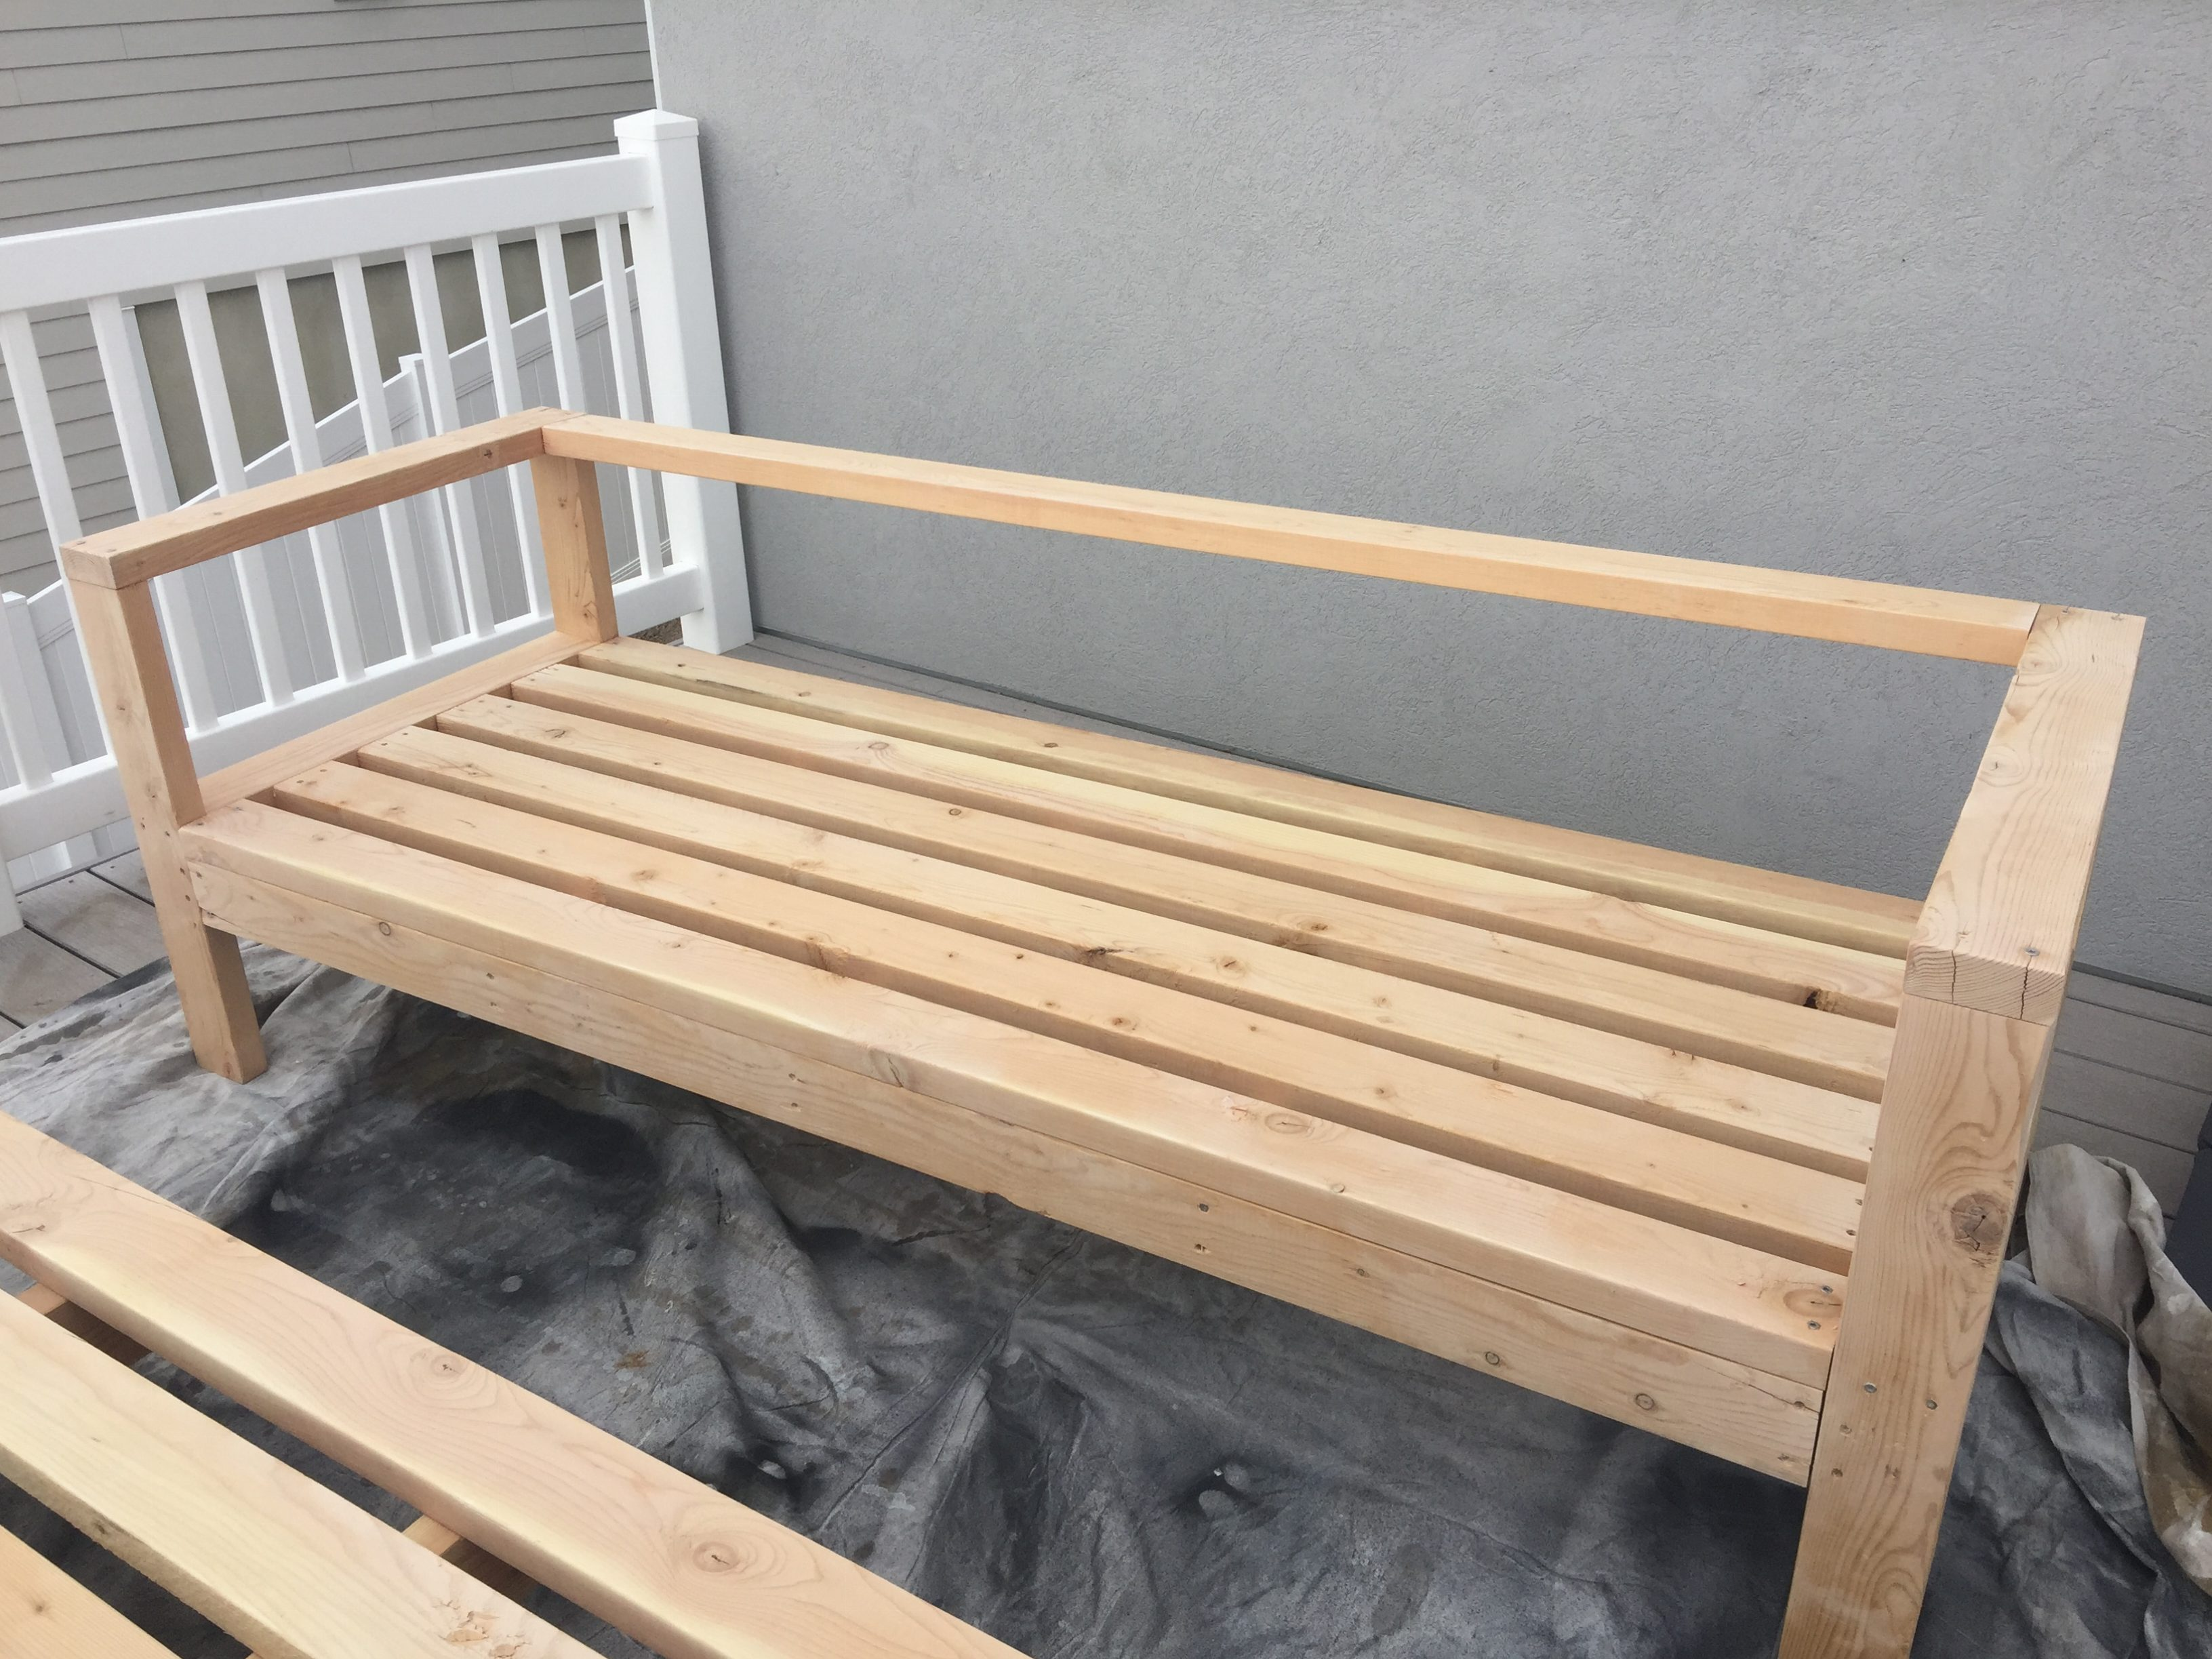 Simple outdoor wood bench - Step 4 Finish With One More Board In The Back Attached With A Kreg Jig The Rest Of The Frame Was Assembled Quickly Using Self Tapping Screws